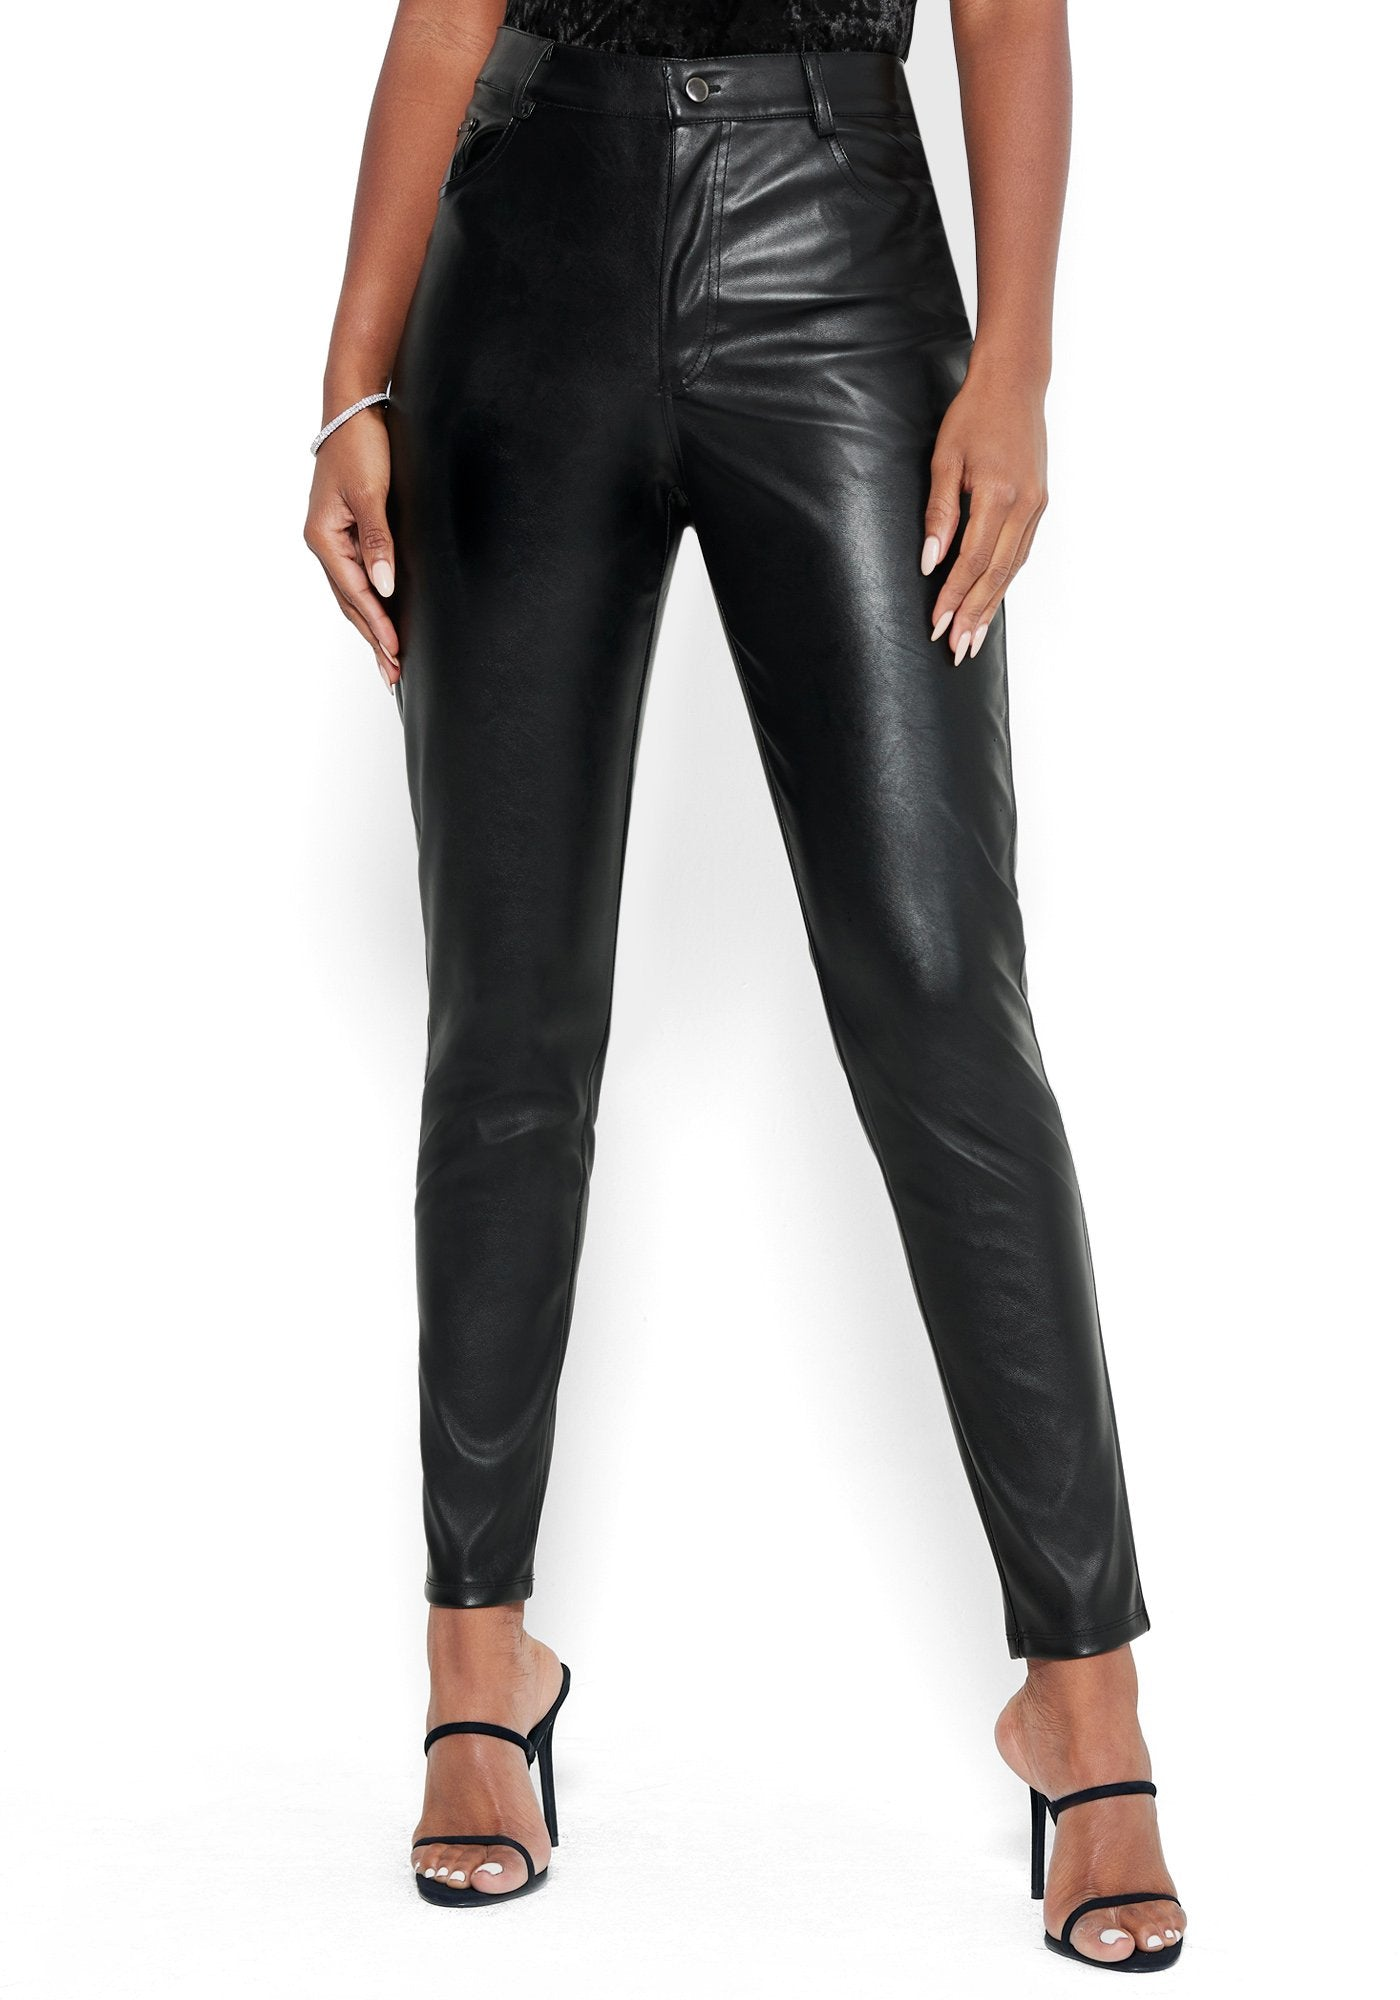 Bebe Women's Faux Leather Pant, Size 00 in Black Polyurethane